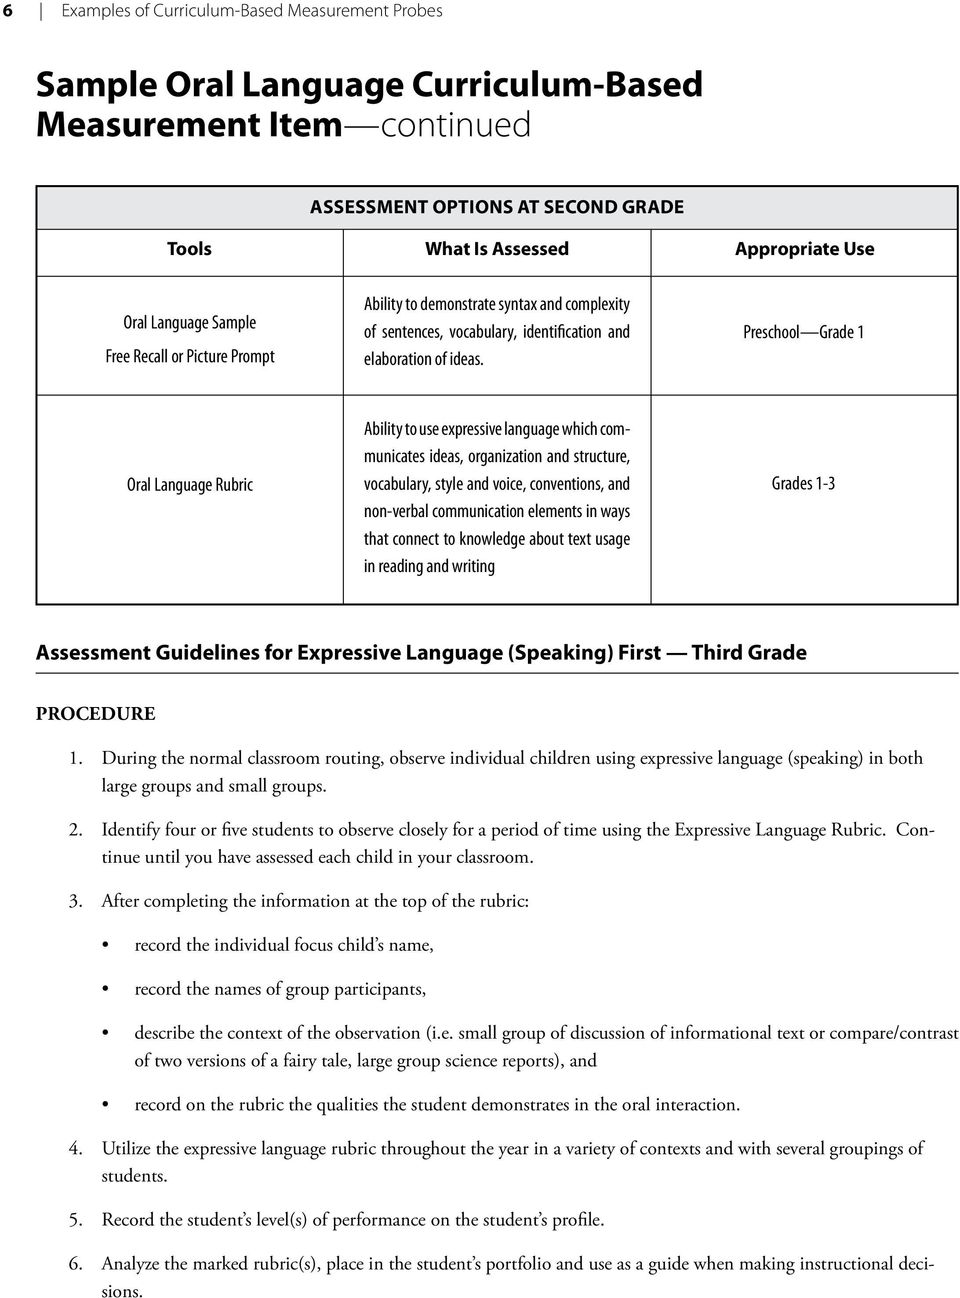 Preschool Grade 1 Oral Language Rubric Ability to use expressive language which communicates ideas, organization and structure, vocabulary, style and voice, conventions, and non-verbal communication